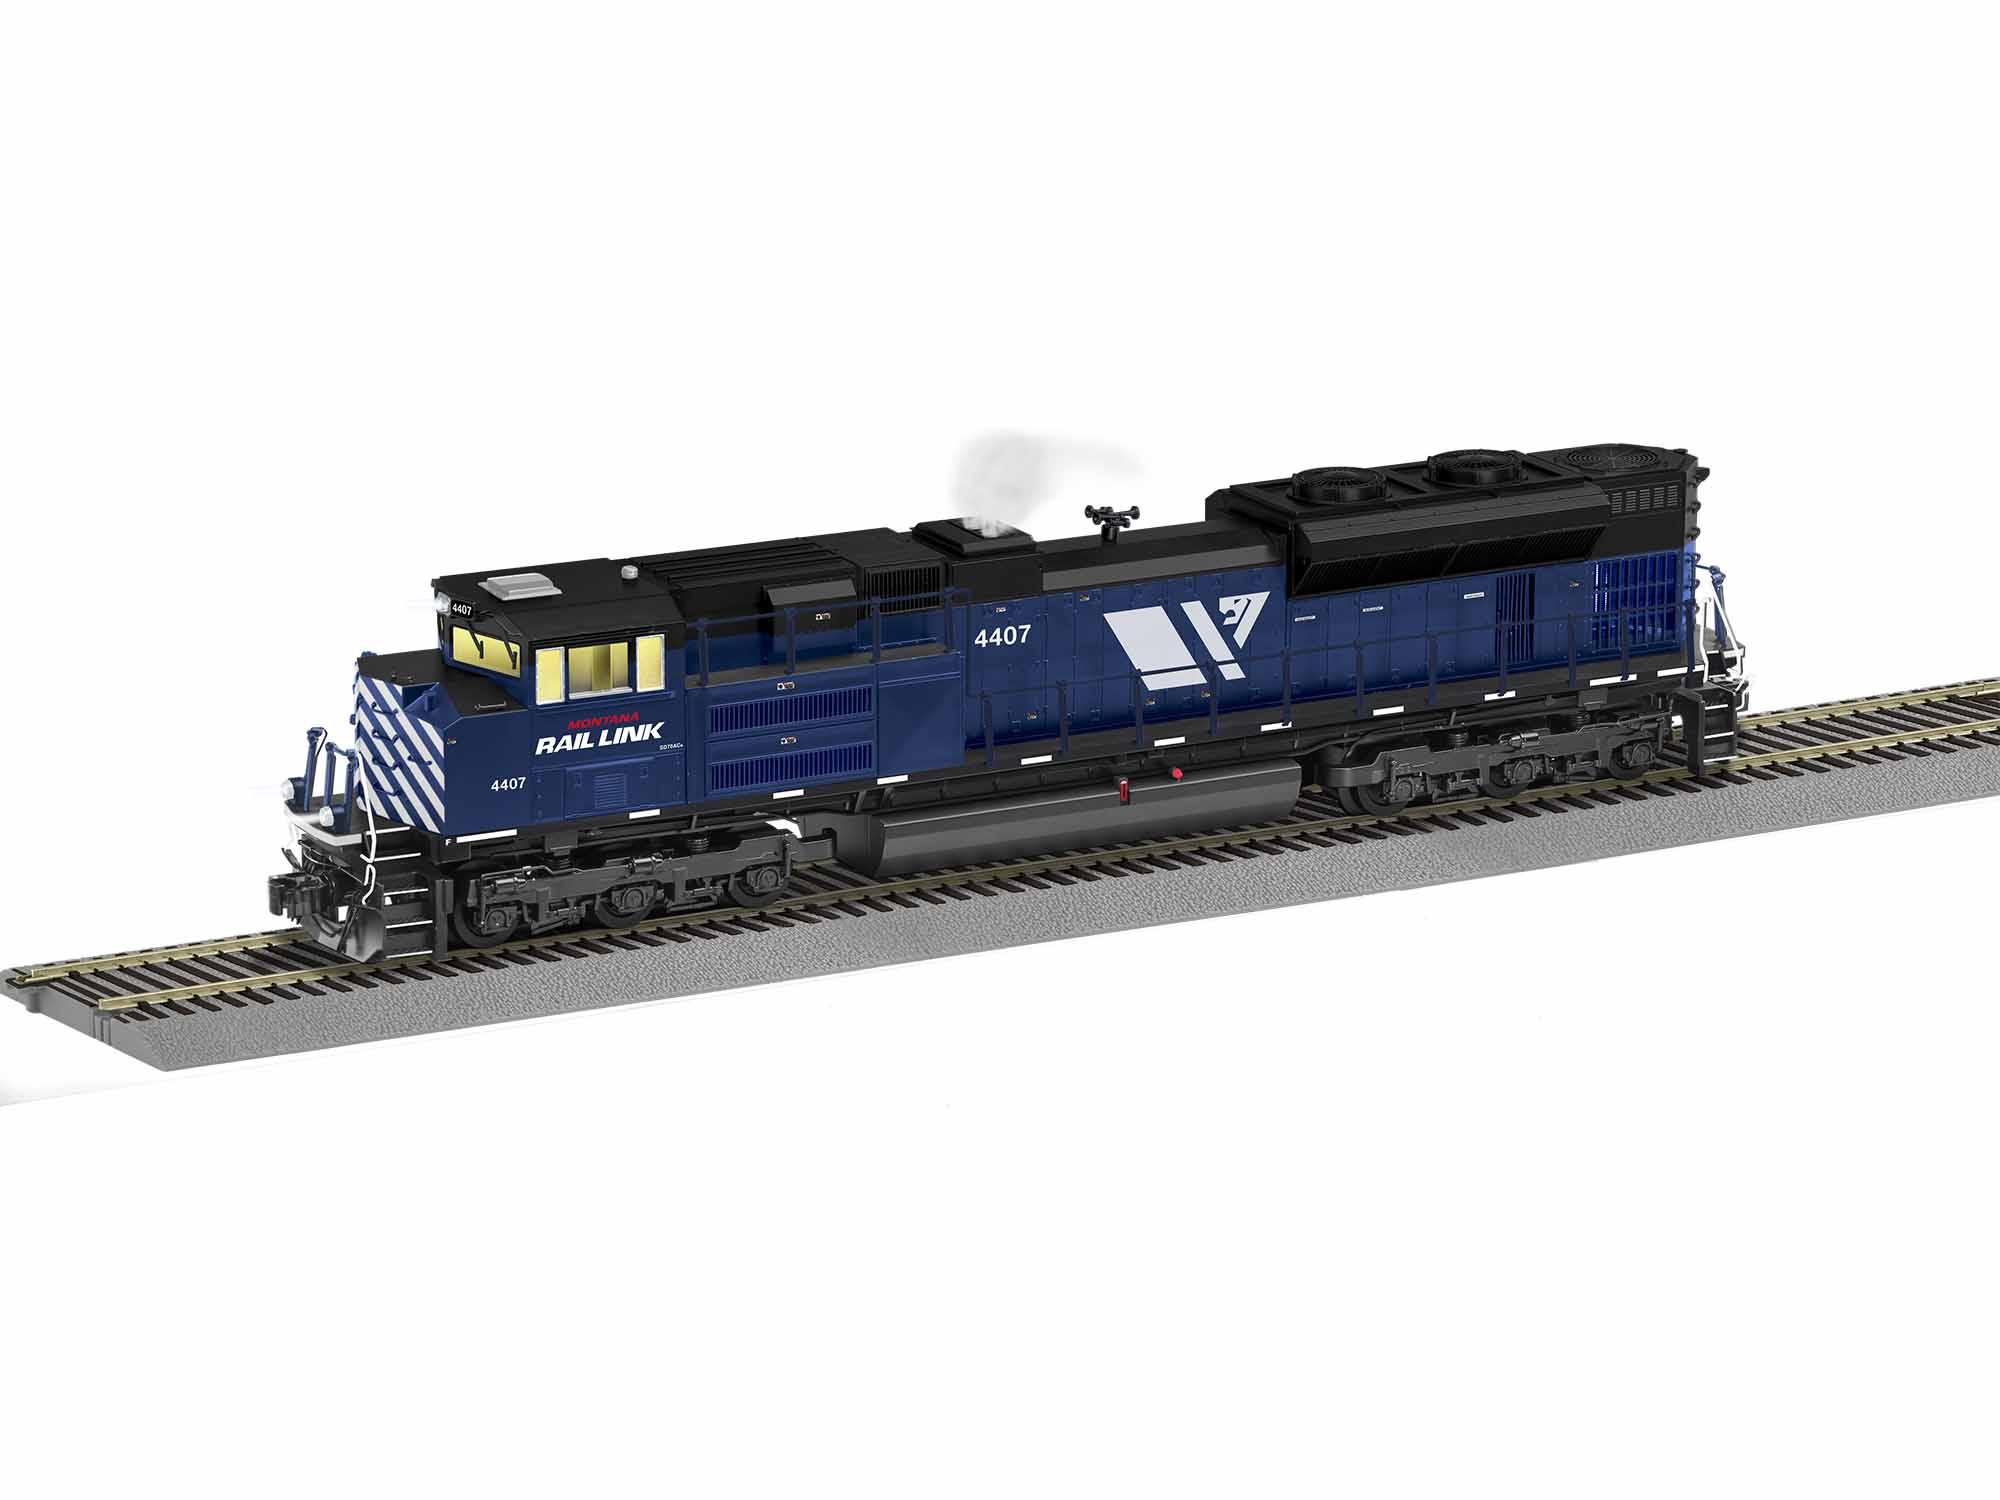 LNL1921122 Lionel S AF SD70ACe w/Legacy, MRL#4407 434-1921122